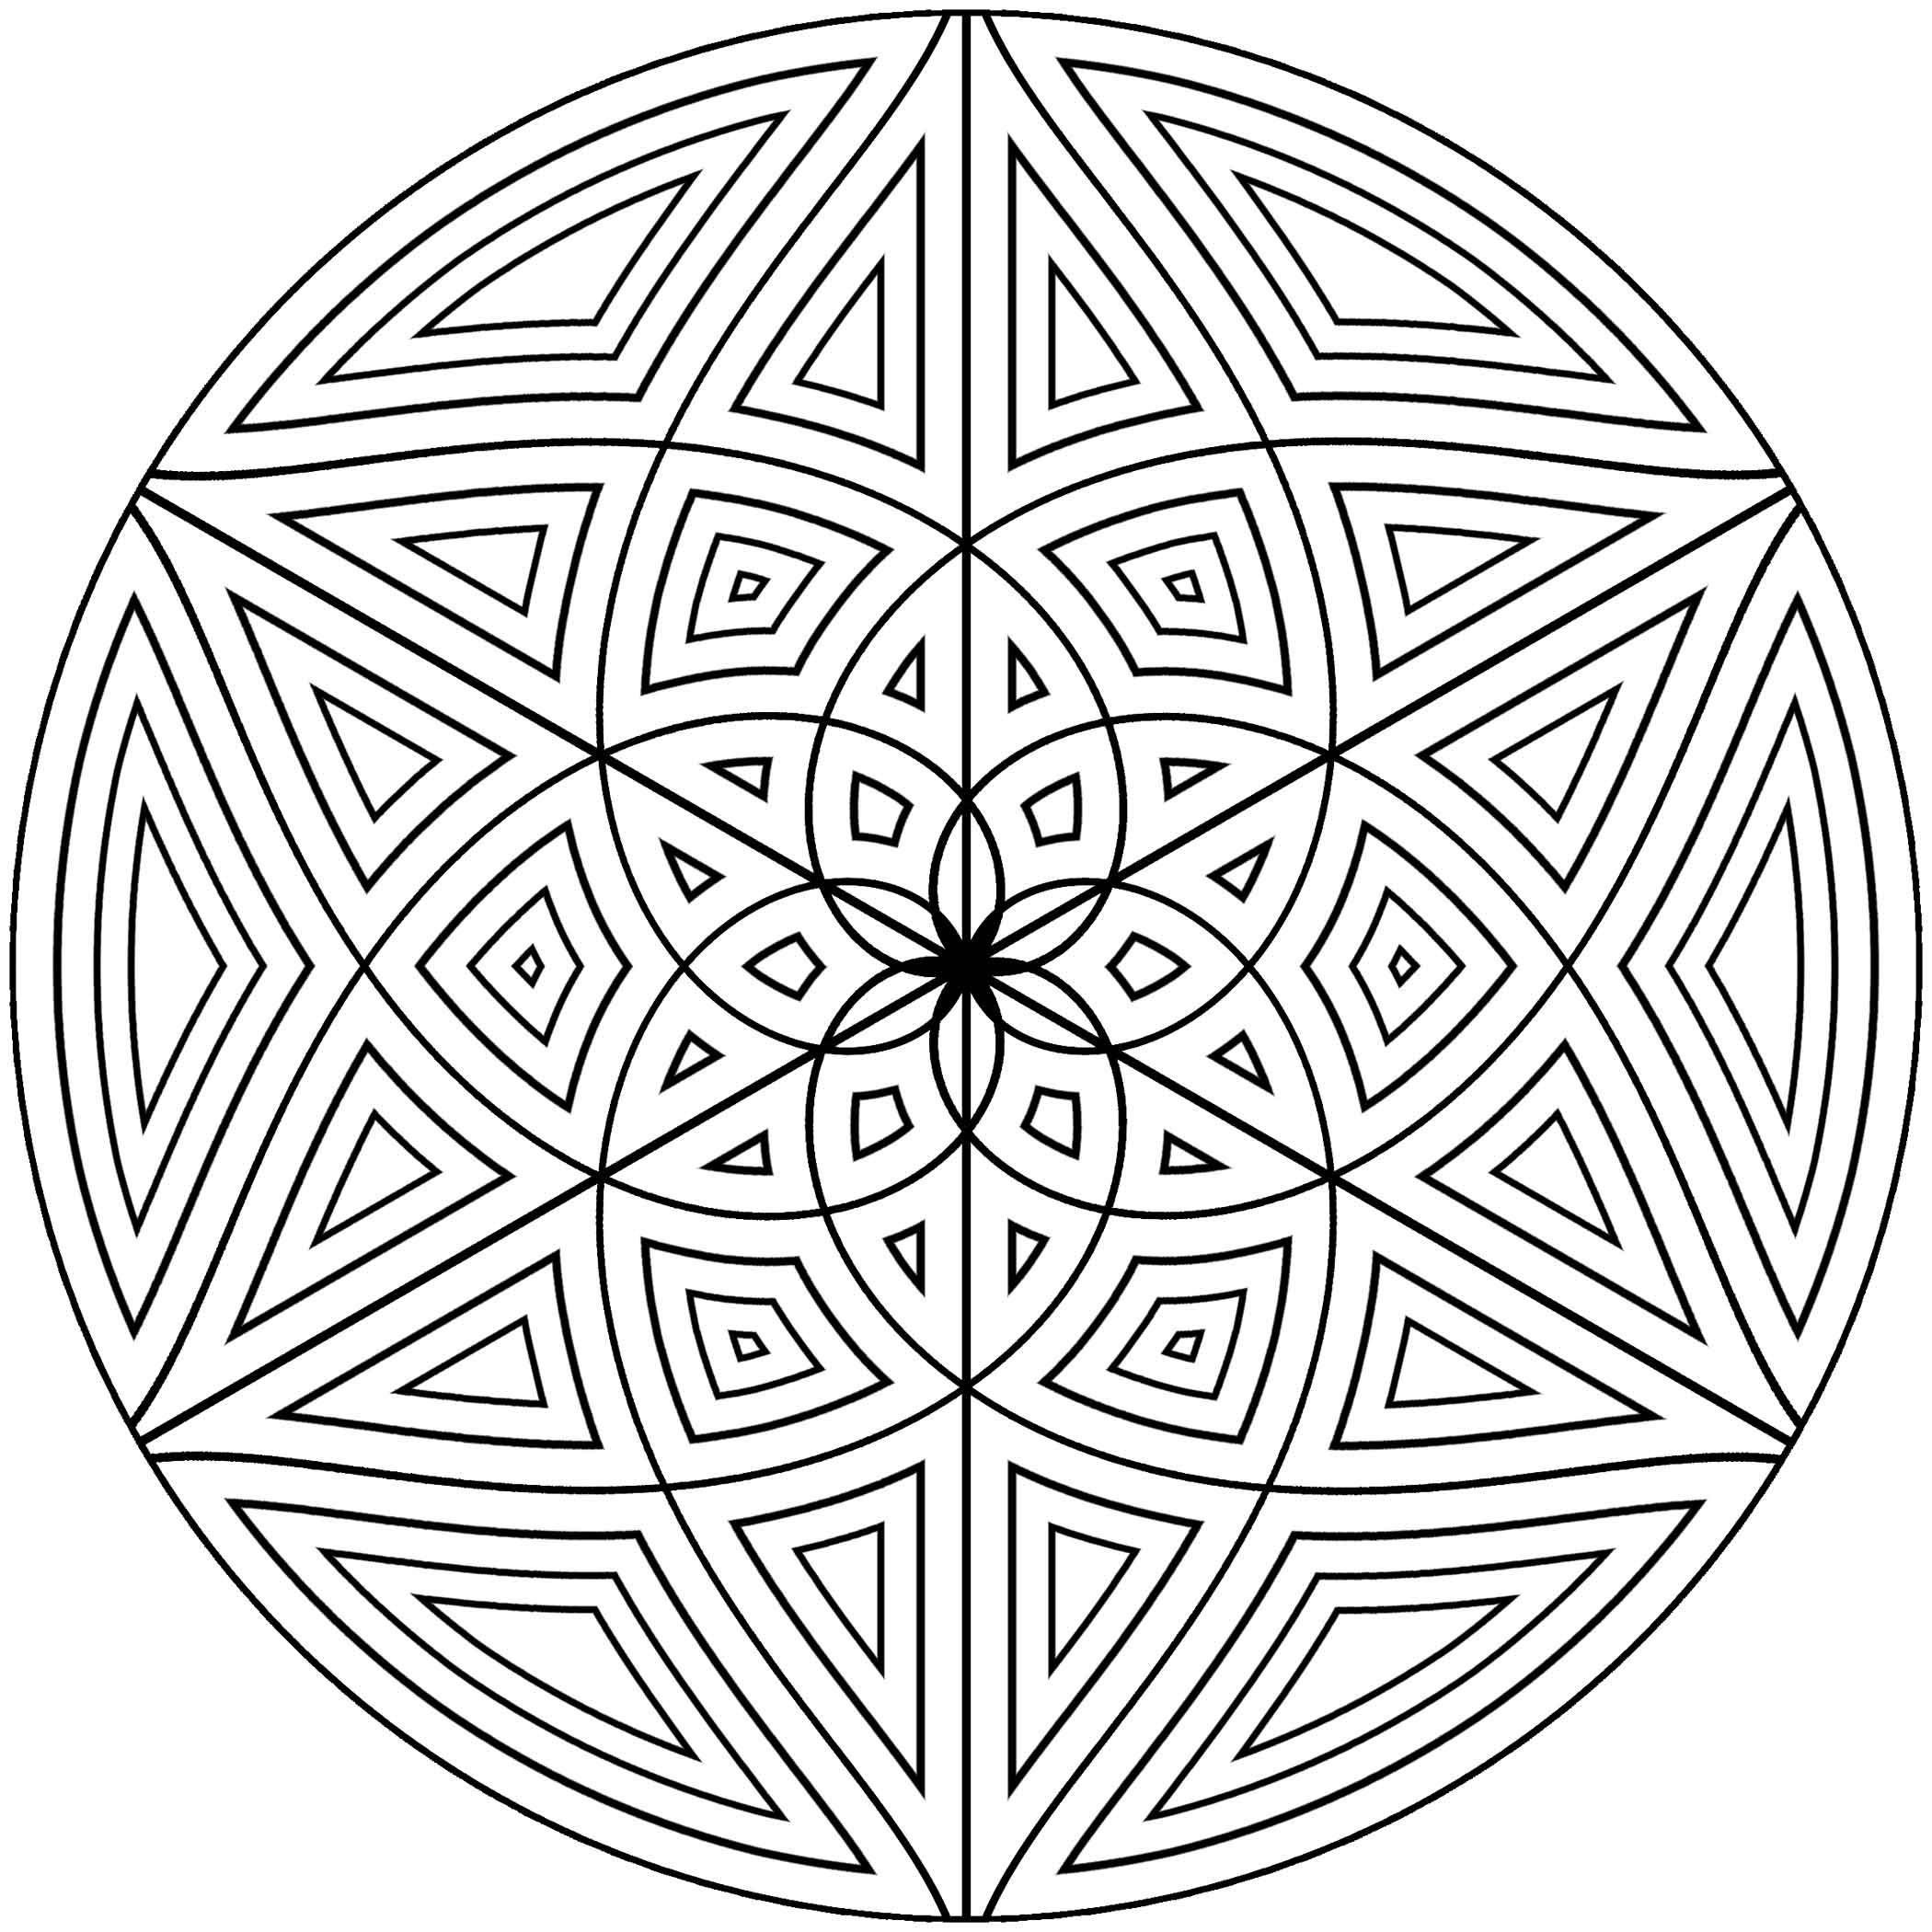 patterns to color free printable geometric coloring pages for adults to patterns color